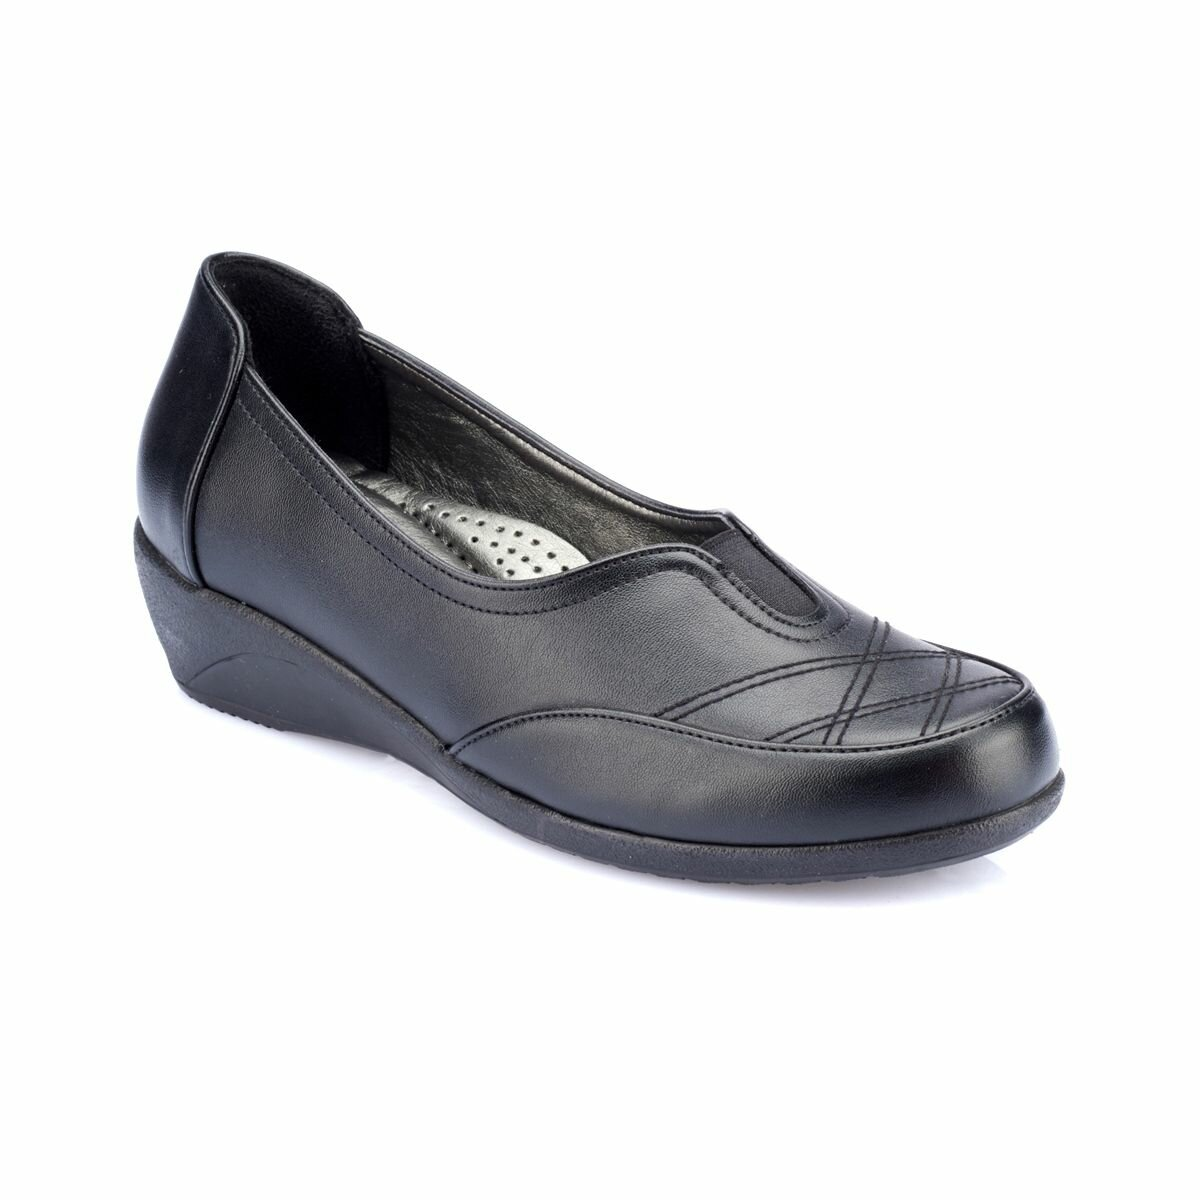 FLO 82. 150021.Z Black Women Shoes Polaris